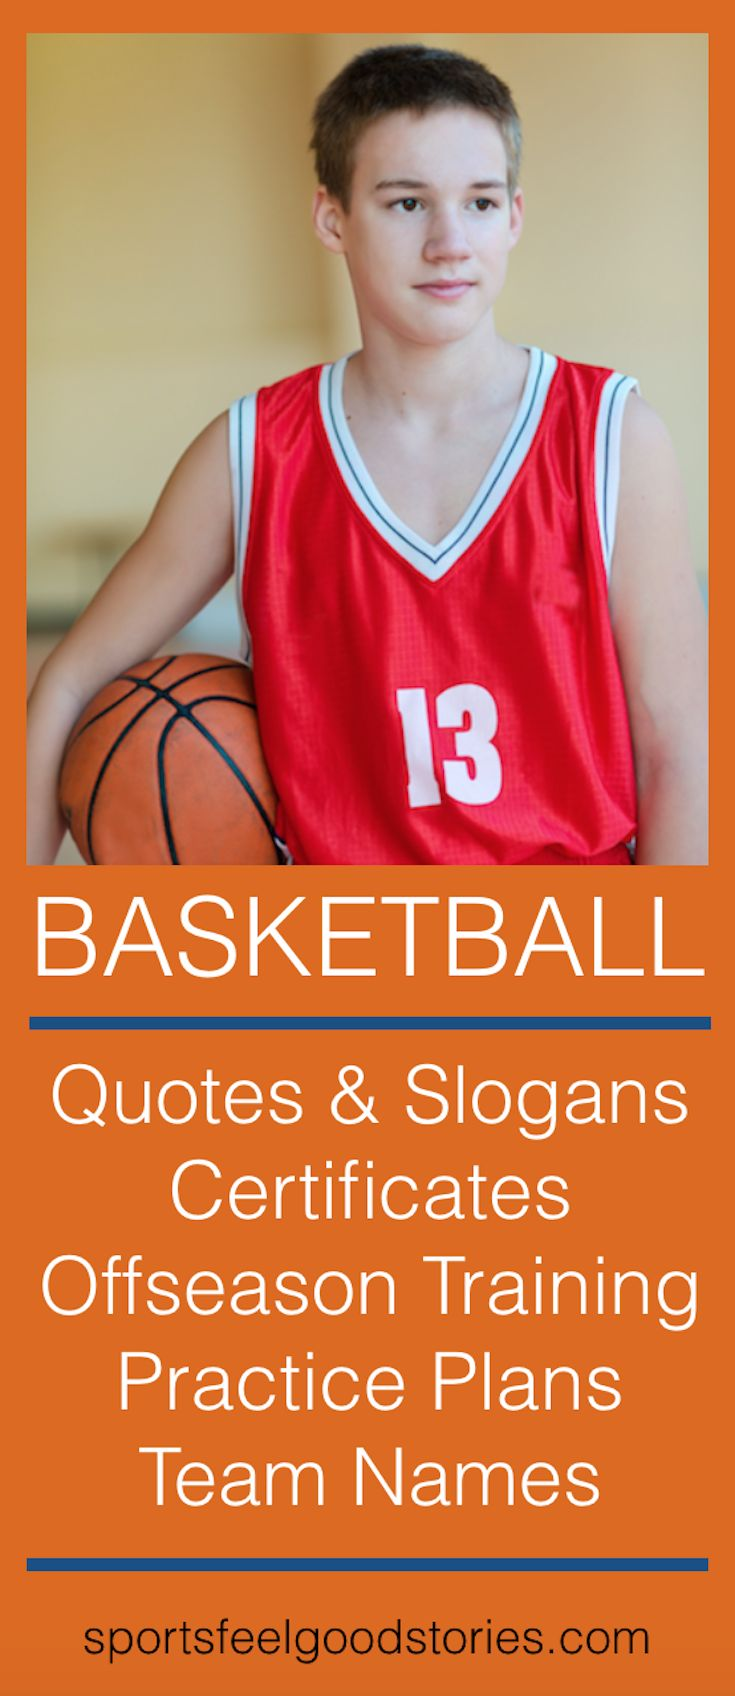 Basketball Coach and Parent Resources including:  - Basketball quotes and slogans - Basketball team names - Practice Plans - Offseason training program - structured workouts - Basketball Award Certificates - Templates  Great tips for coaches and team parents. Perfect coaching gift. Kids drills. Printables. Youth teams.